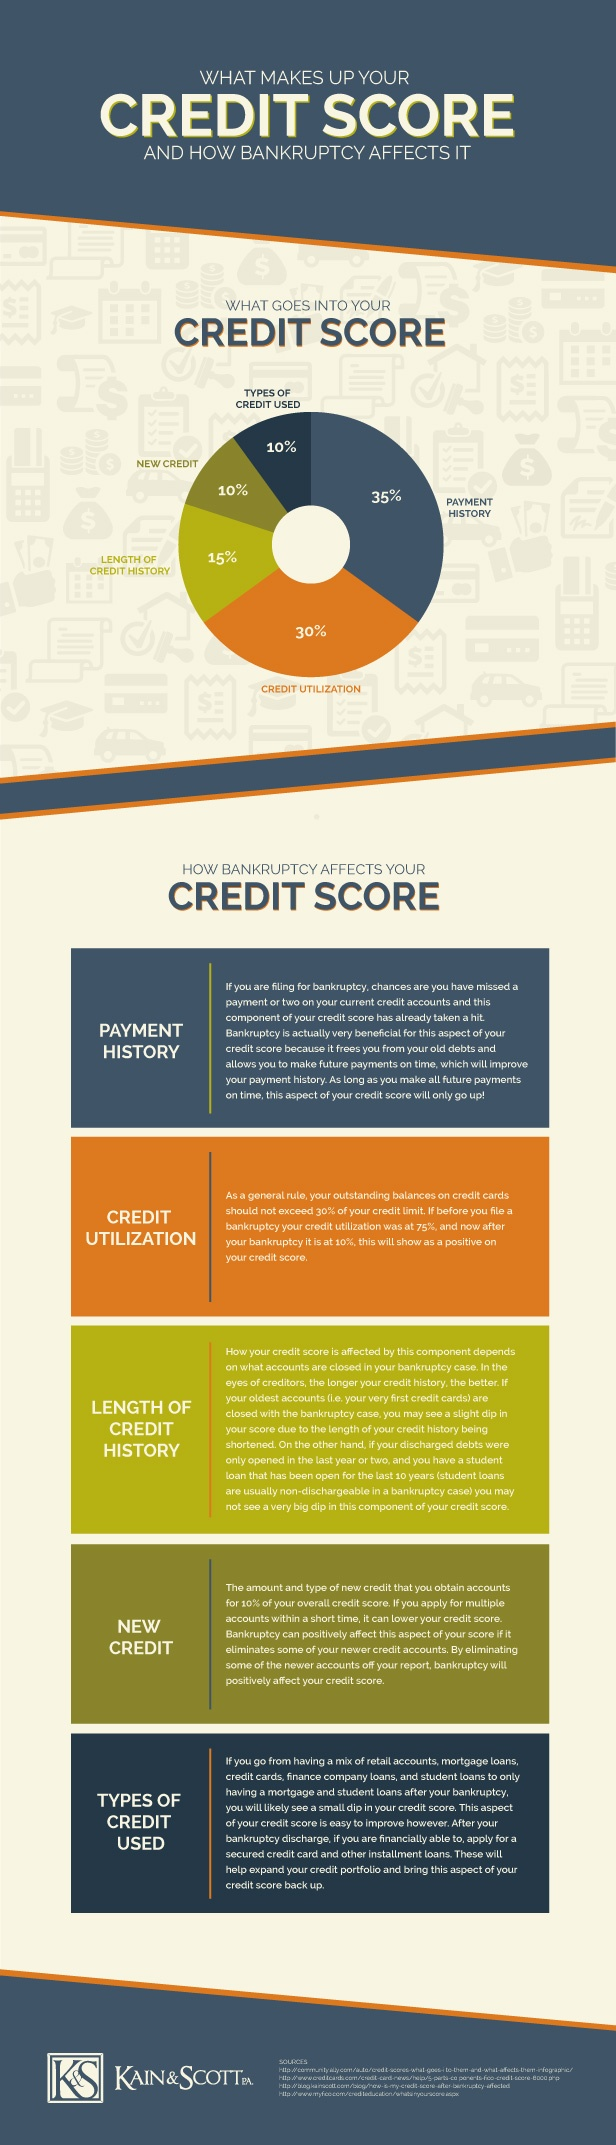 what makes up your credit score and how bankruptcy affects it infographic